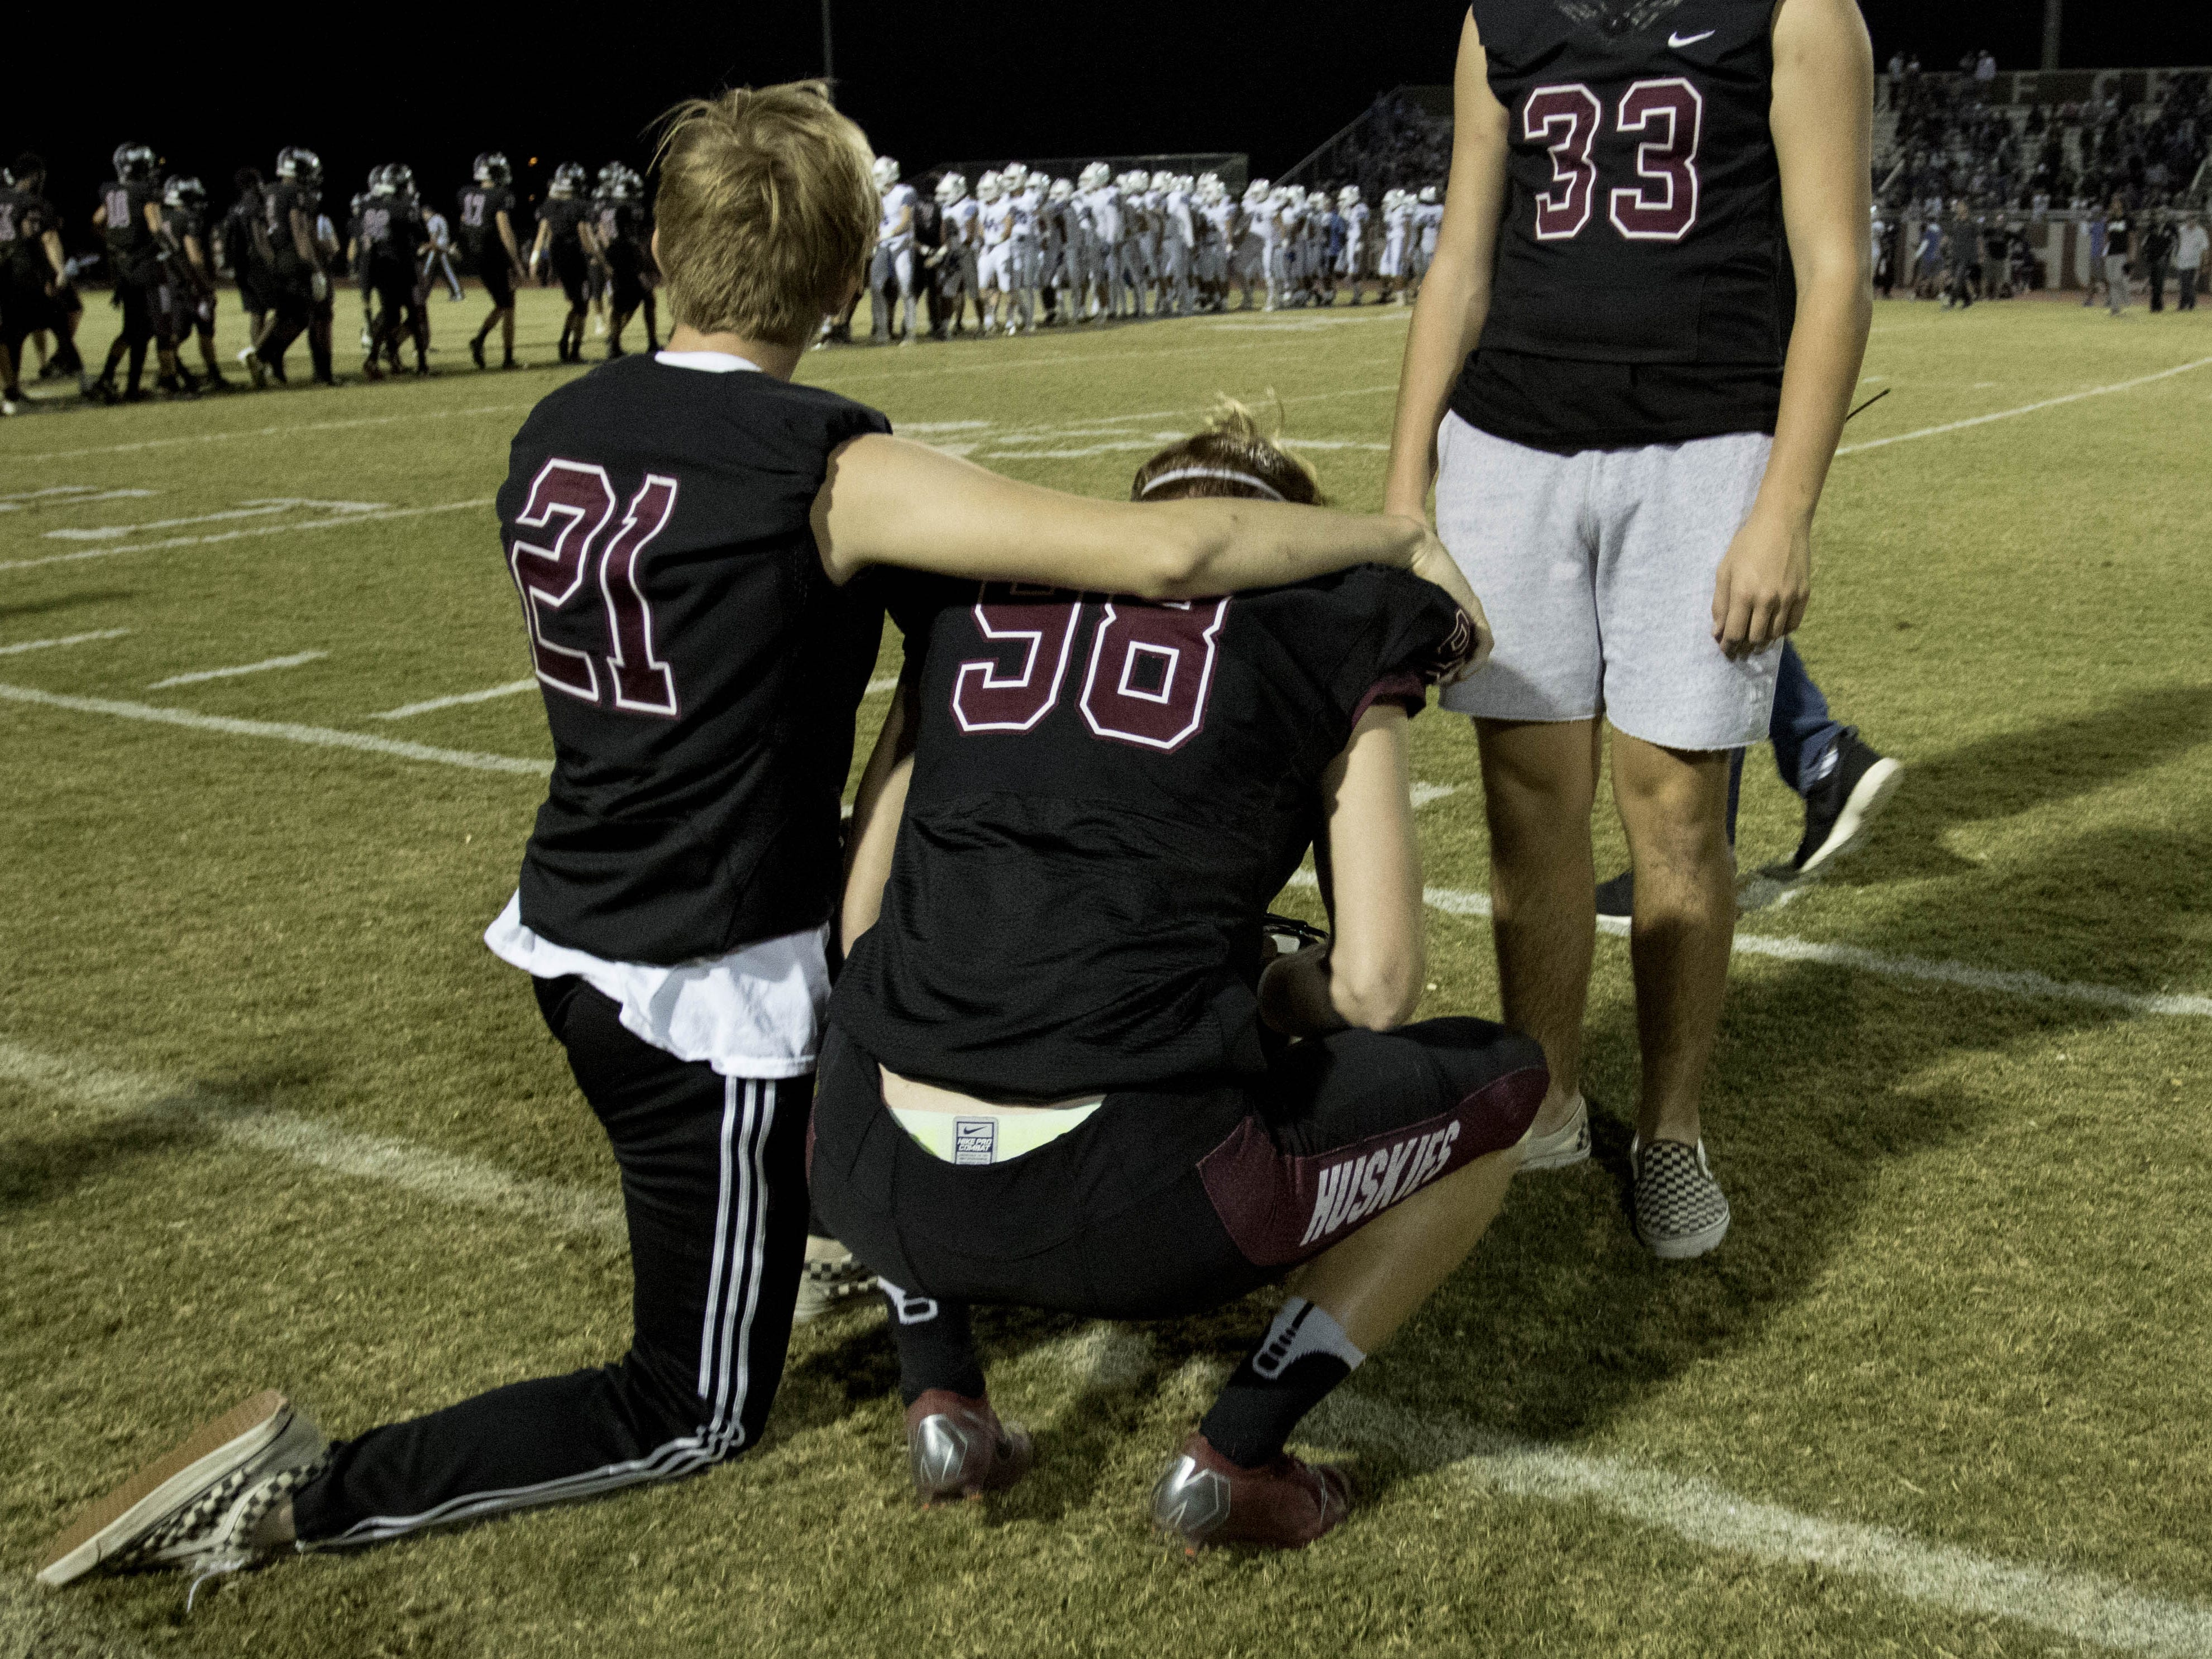 Hamilton senior Daniel Obarski (98) gets consoled by junior teammates Jeremiah Trojan (21) and Jacob Brown (33) after their 49-7 loss over crosstown rival Chandler, Friday, Oct. 26, 2018. #azhsfb